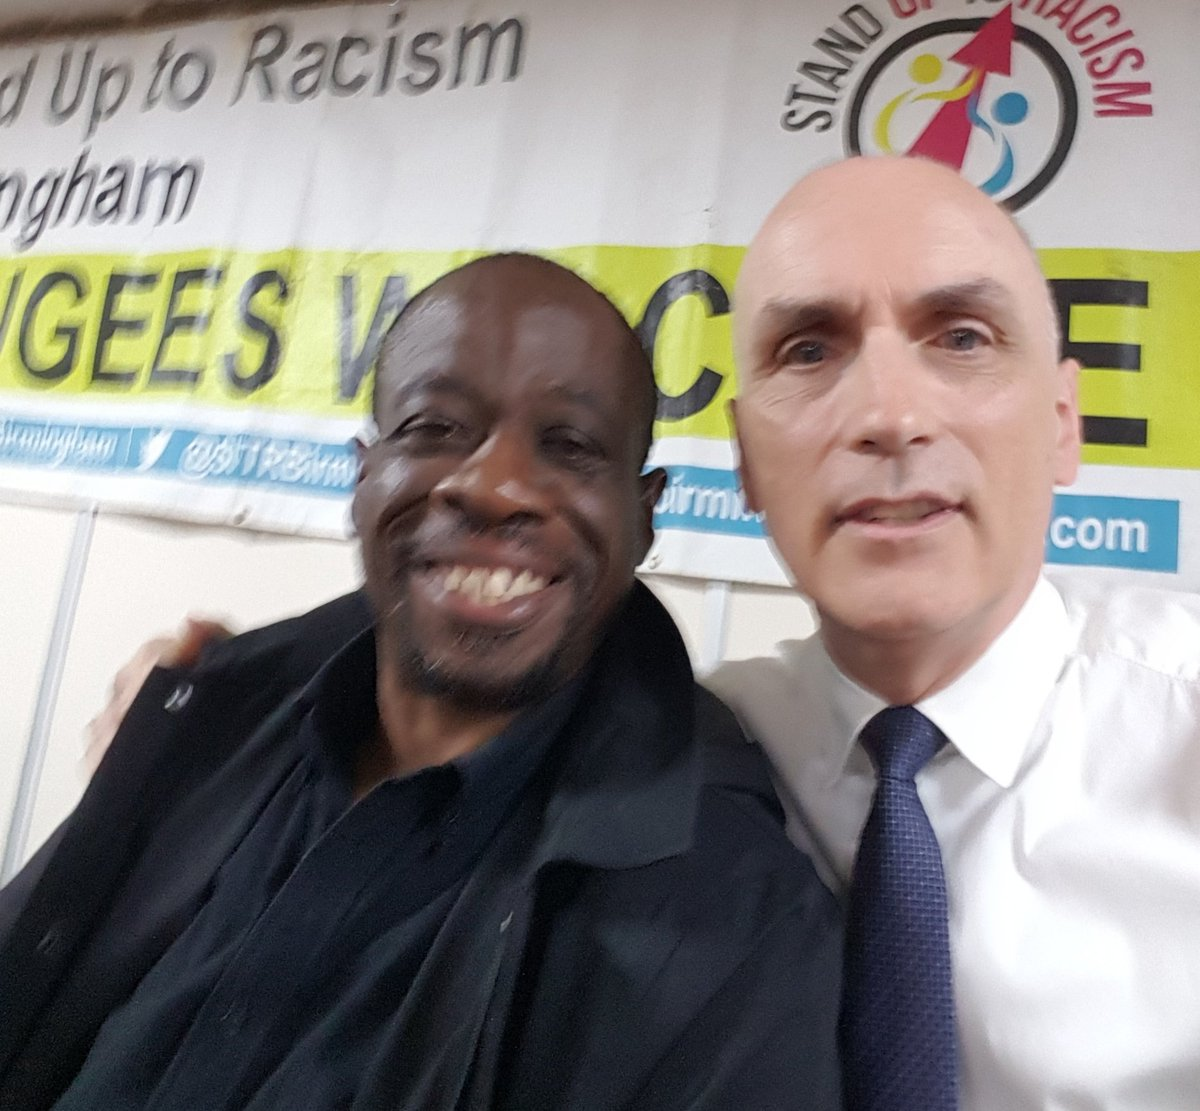 It was a real pleasure to speak alongside Clare Short and Weyman Bennett, one of the co-conveners of @AntiRacismDay, at the Stand Up to Racism conference in Birmingham this morning.